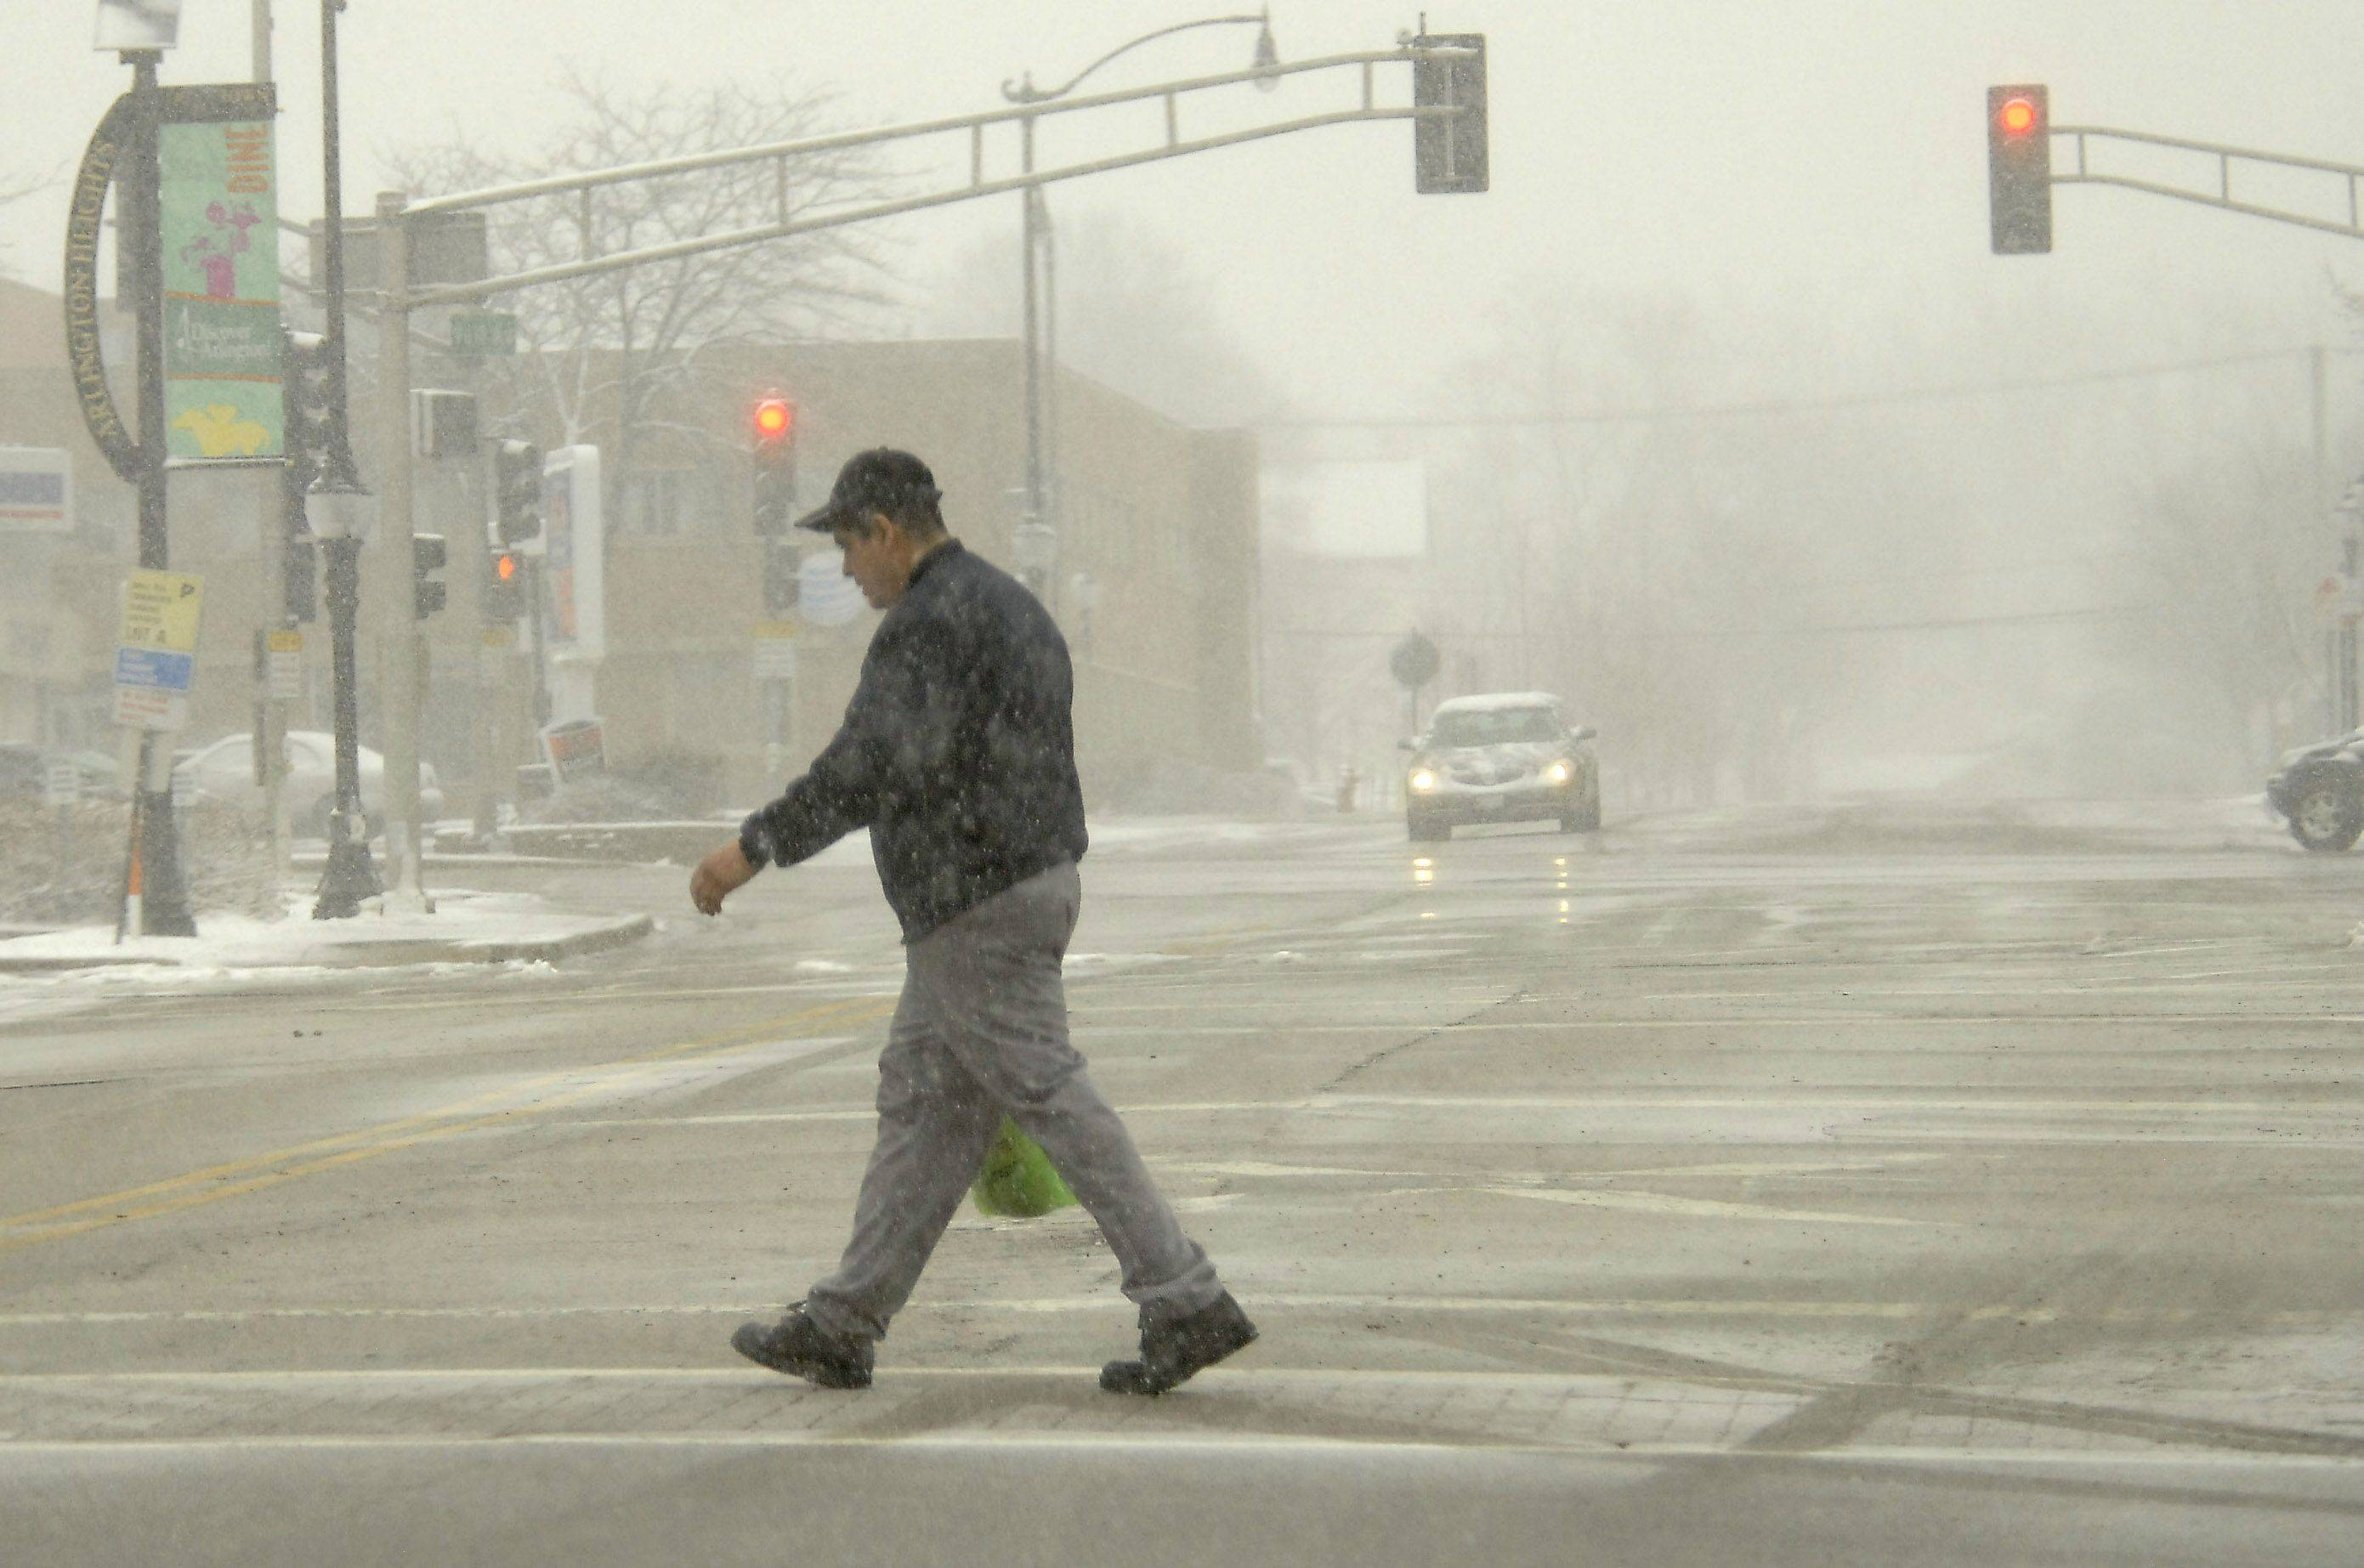 Conditions were still not too bad for pedestrians as the temperature hovered around 30 degrees on Vail Avenue just south of the Metra tracks Thursday afternoon in Arlington Heights.